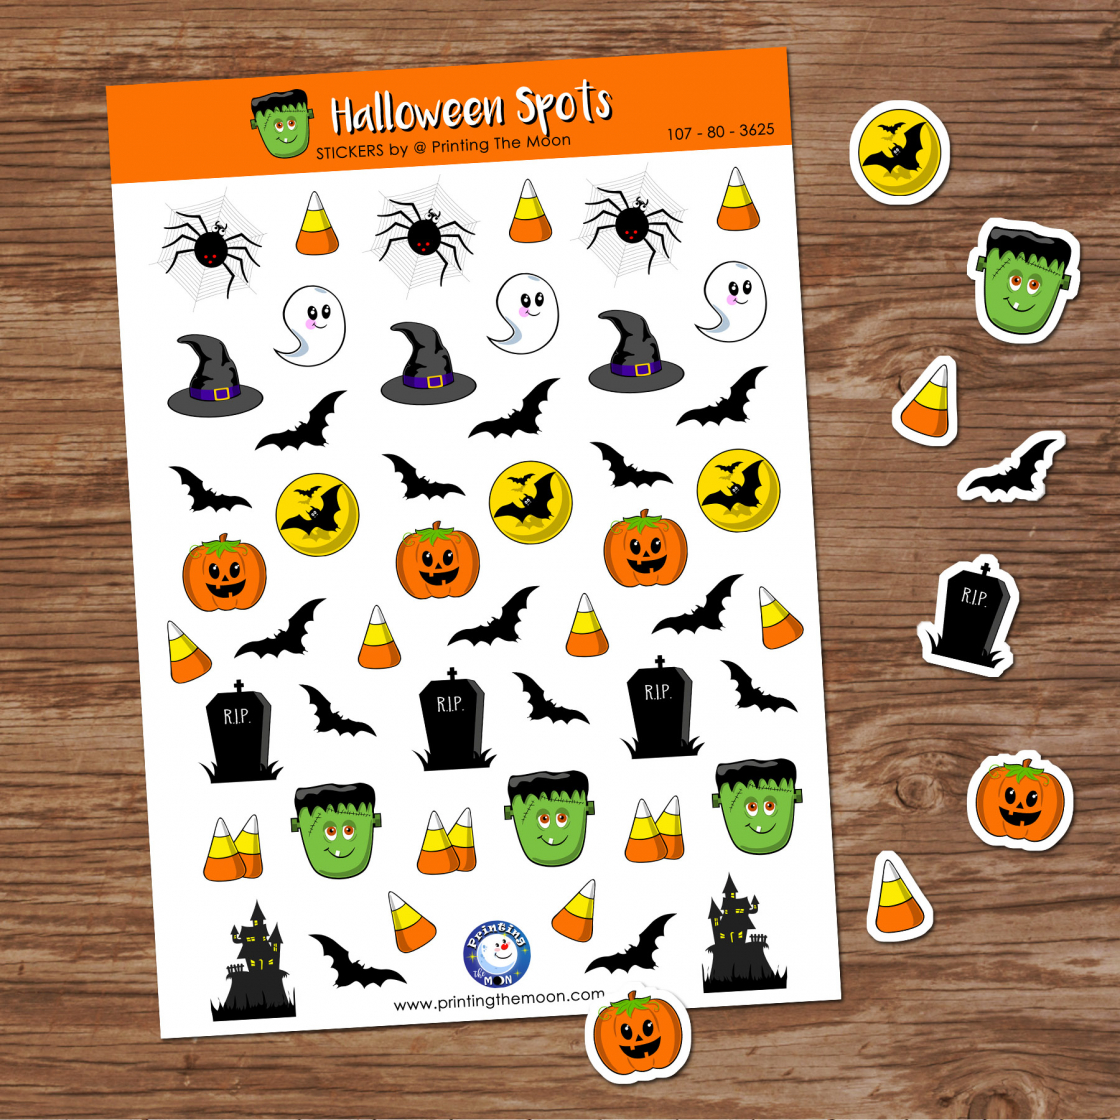 https://printingthemoon.com/collections/stickers/products/halloween-fun-spots-sticker-sheet-scrapbook-and-planner-sticker-set-stickers